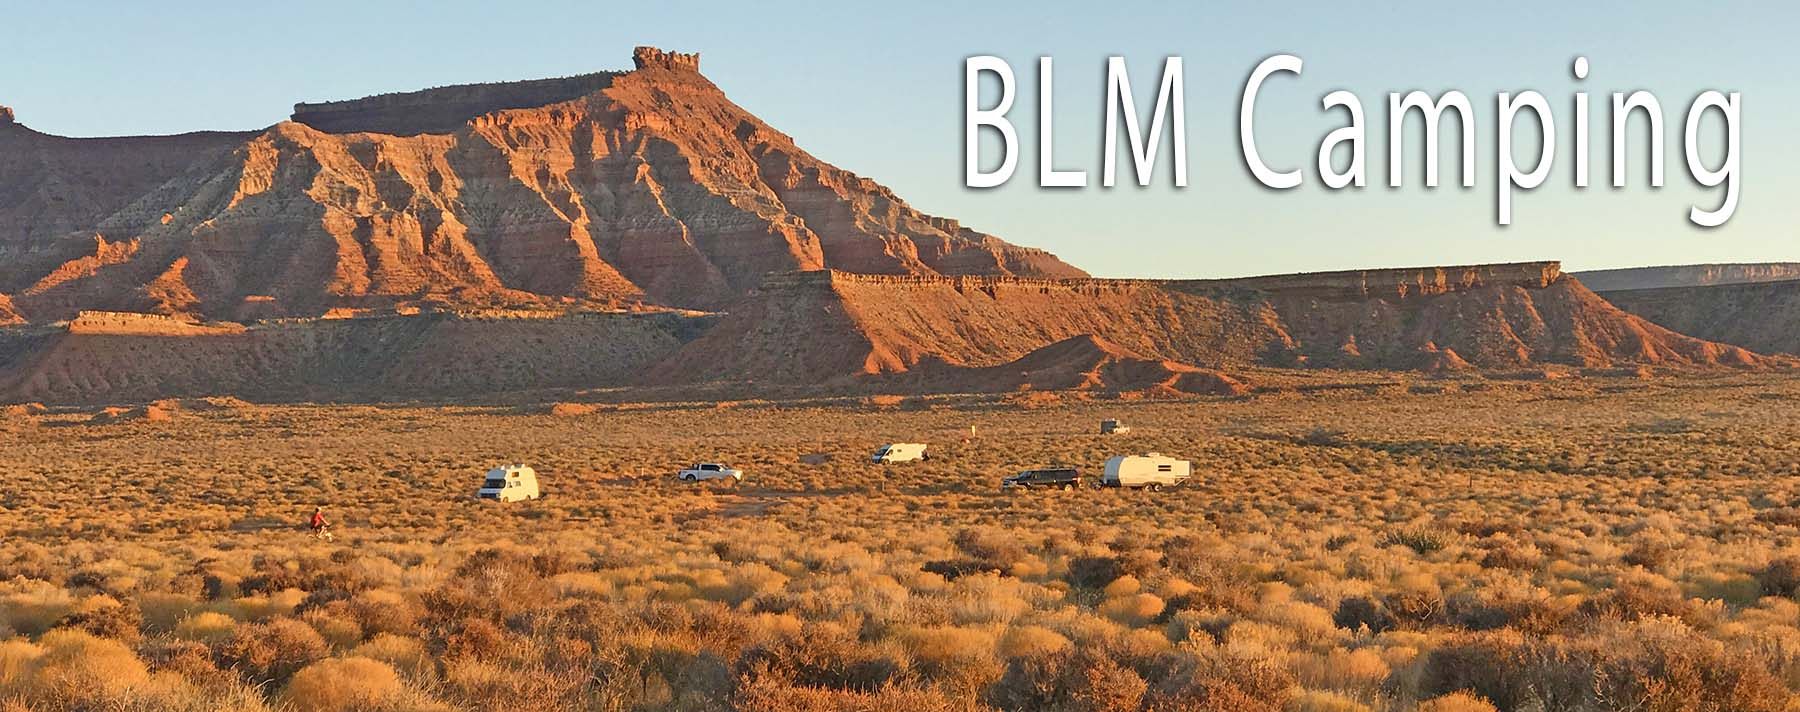 BLM Land Camping